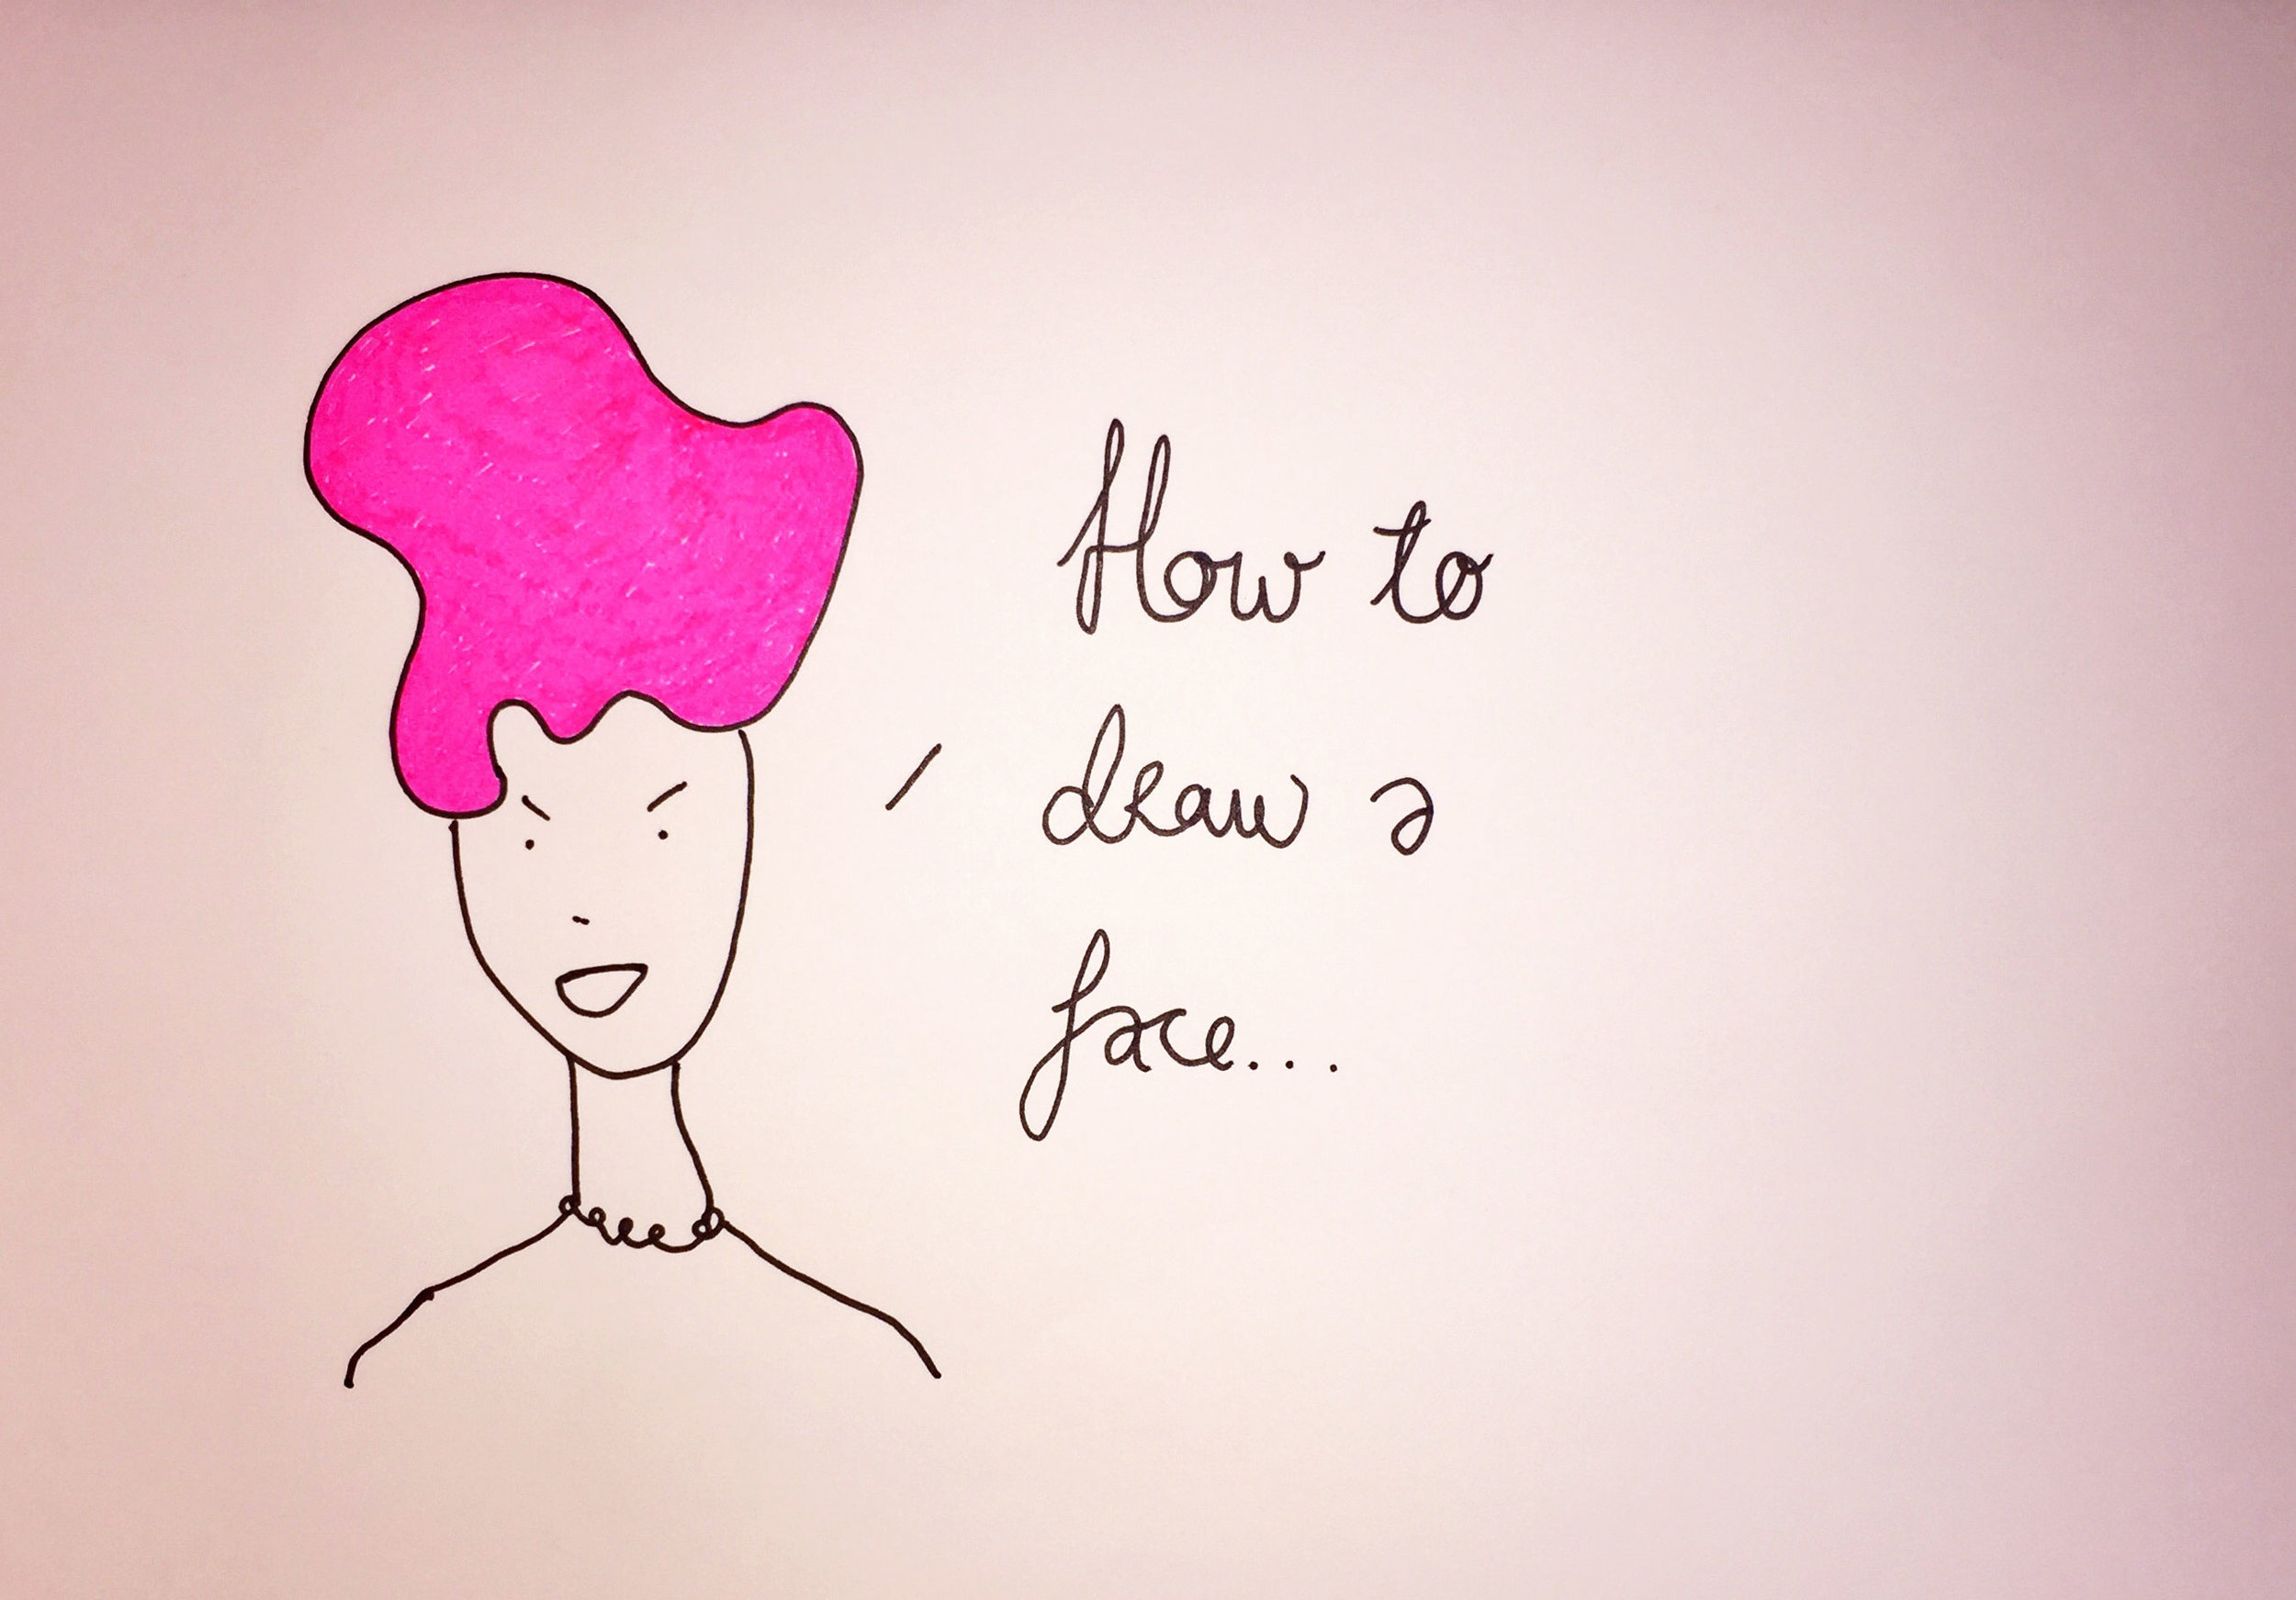 How to draw a face. Drawing Luke Hockley.